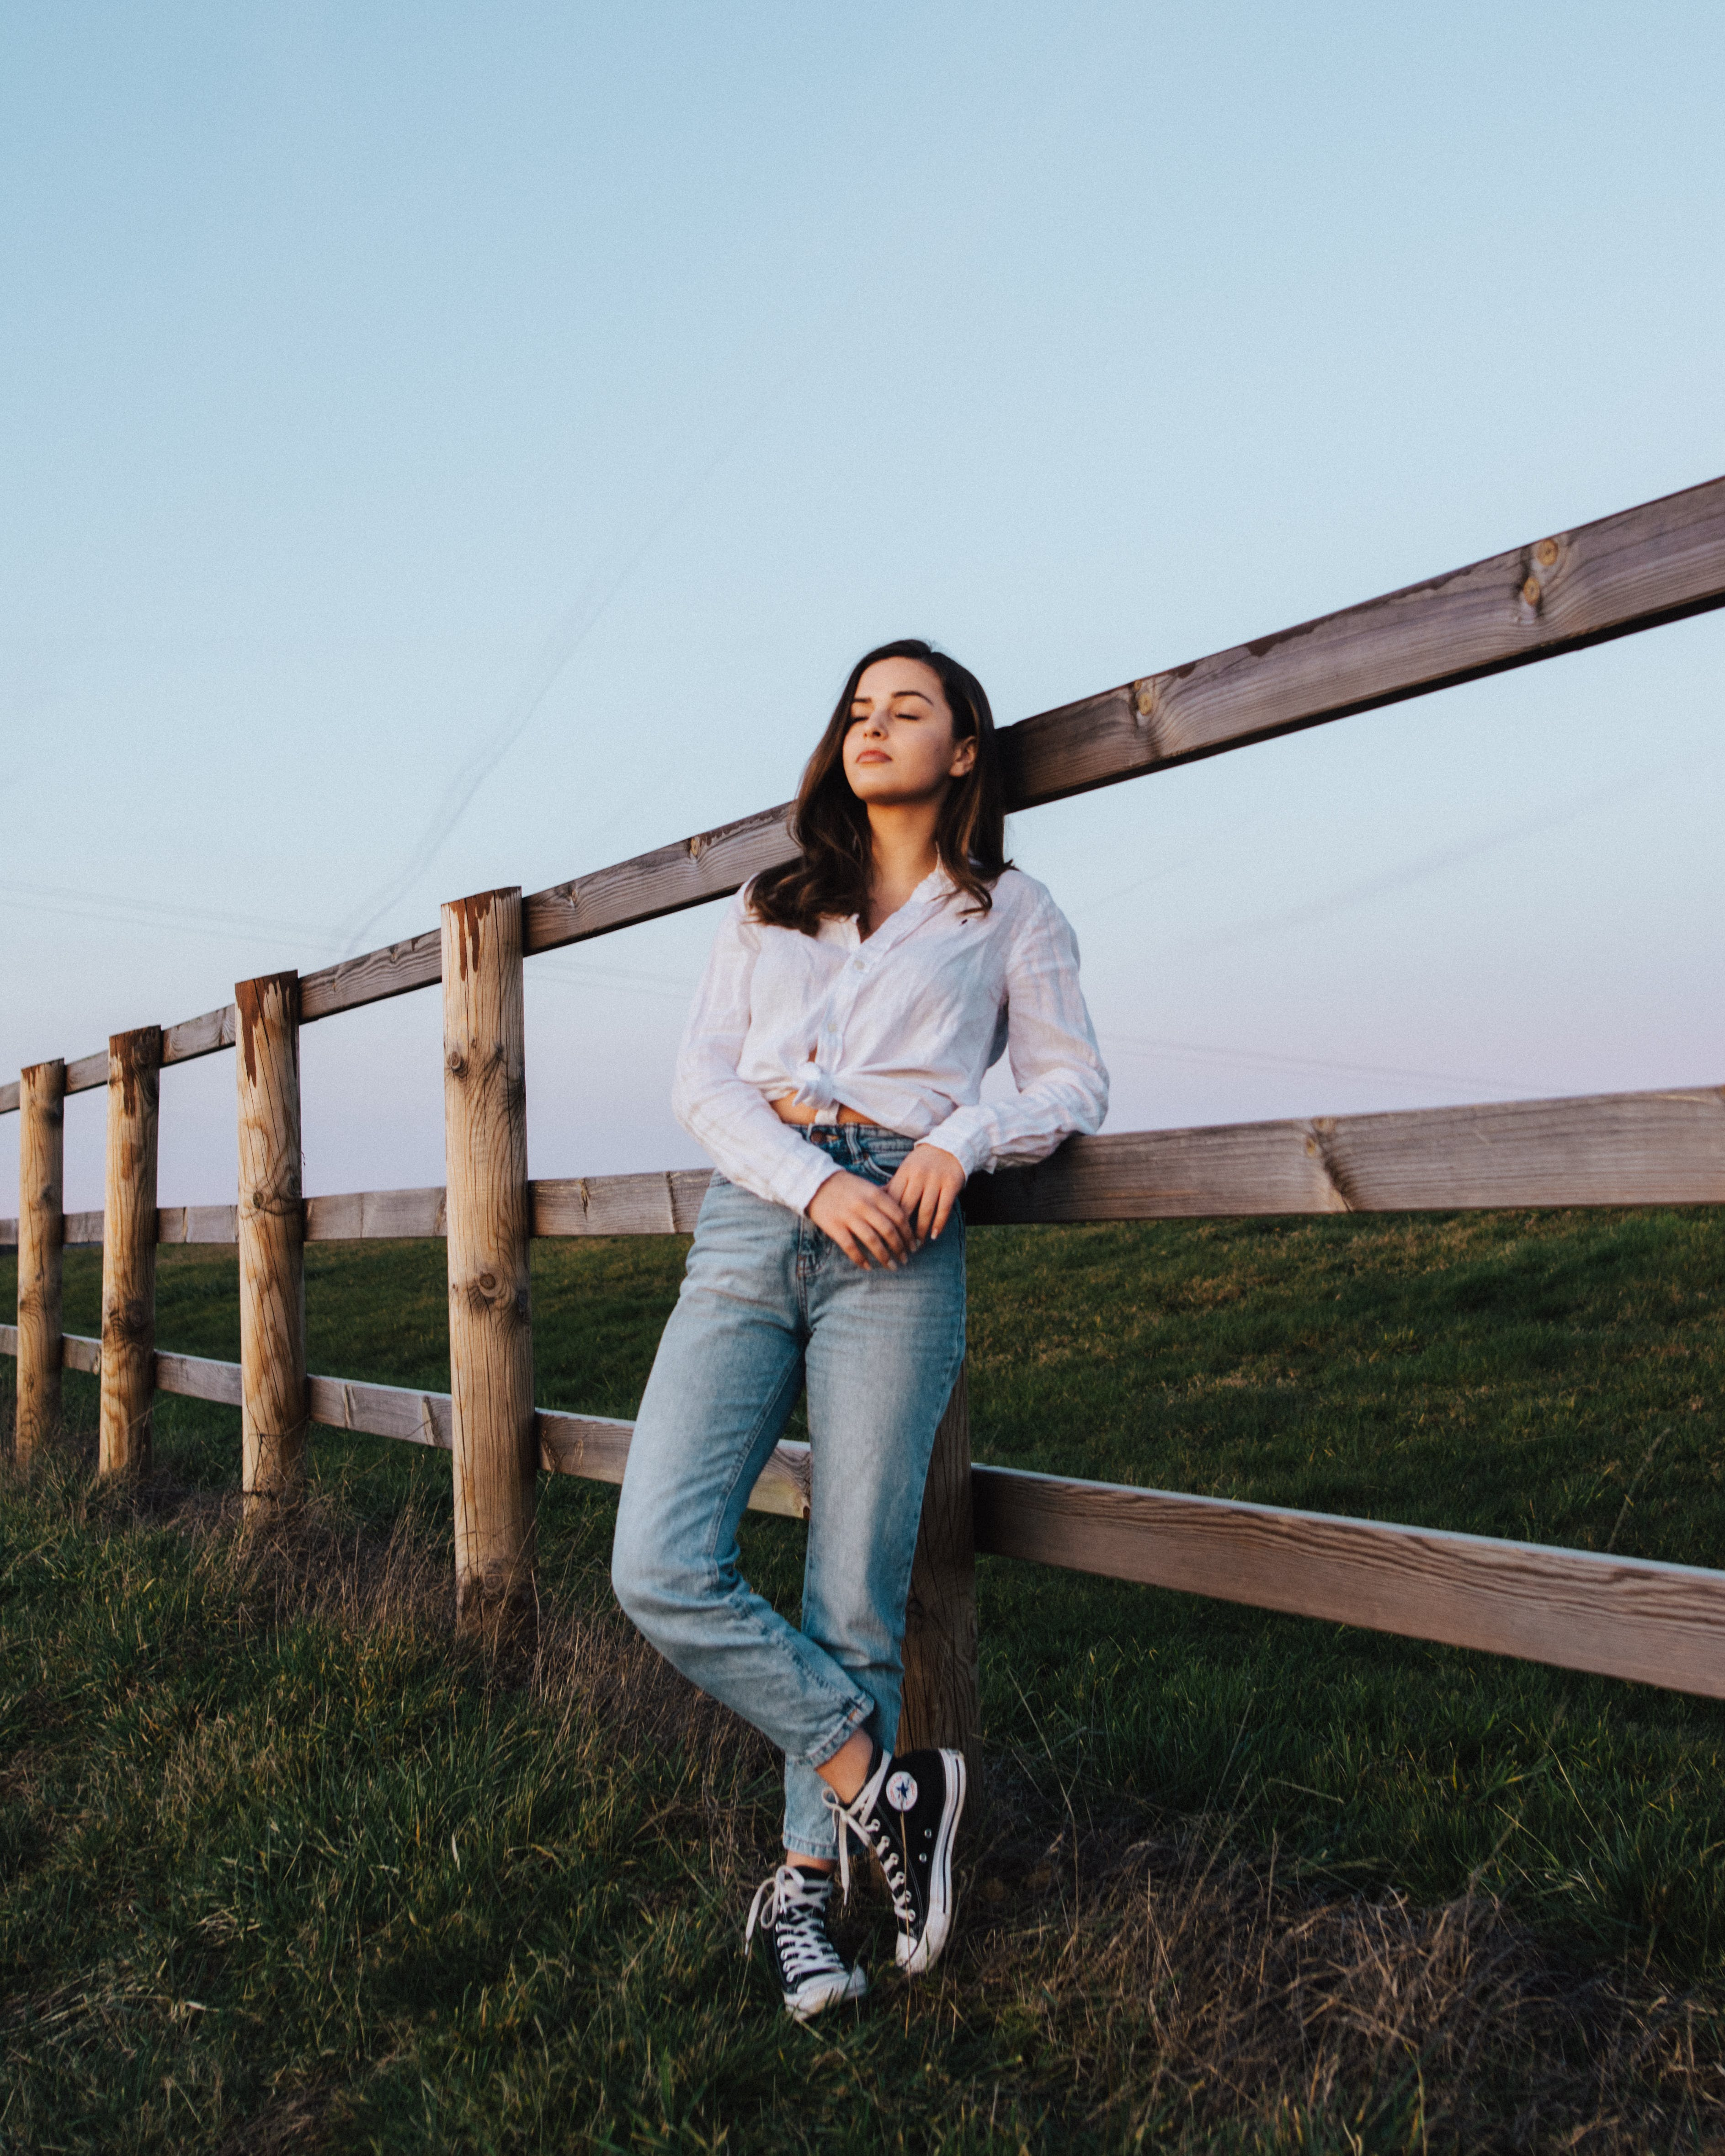 Woman Leaning on Wooden Fence While Standing on Grass Field